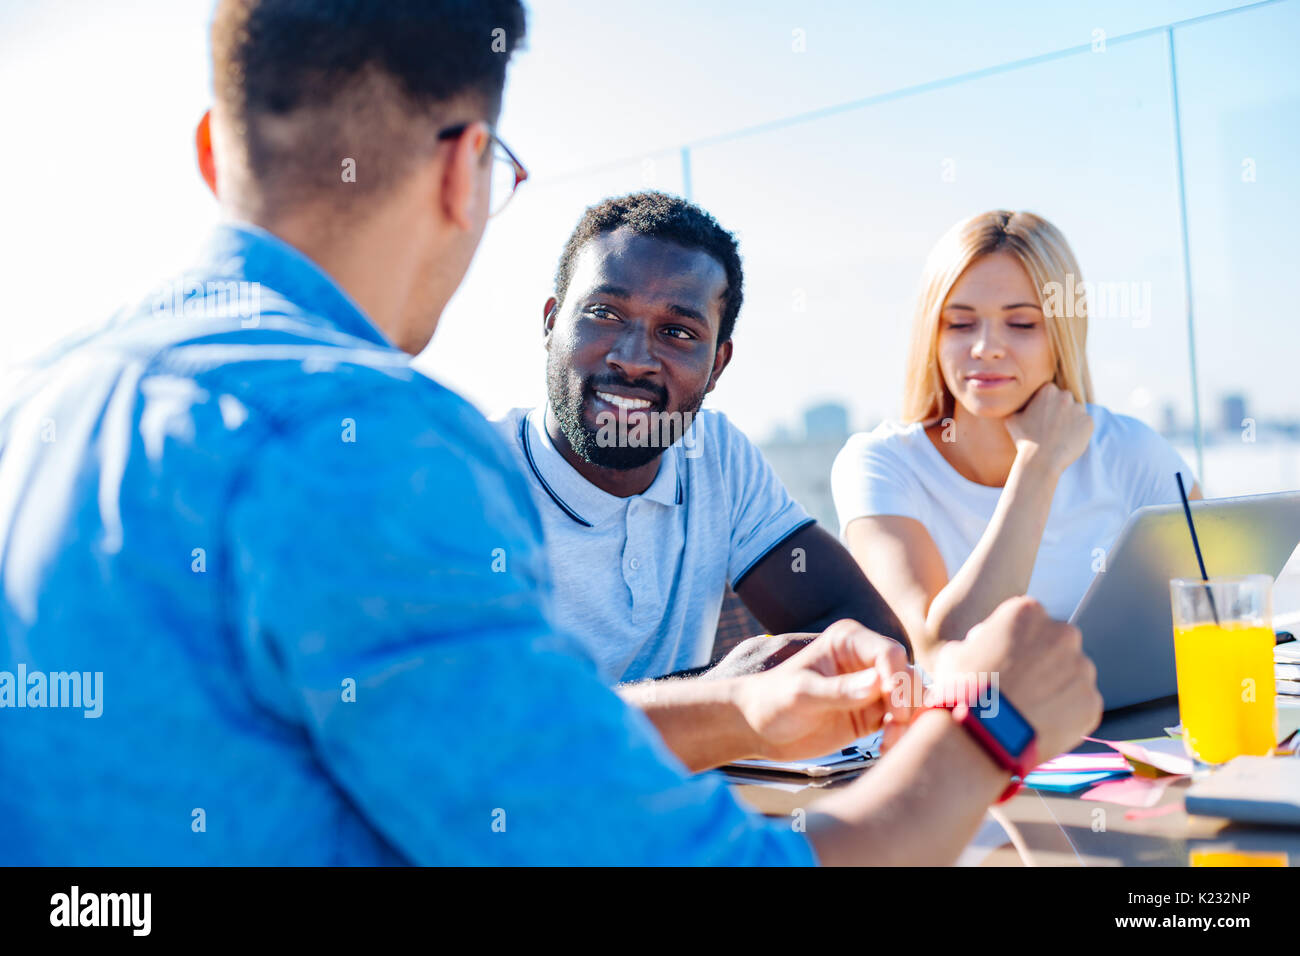 University people studying together in cafe - Stock Image